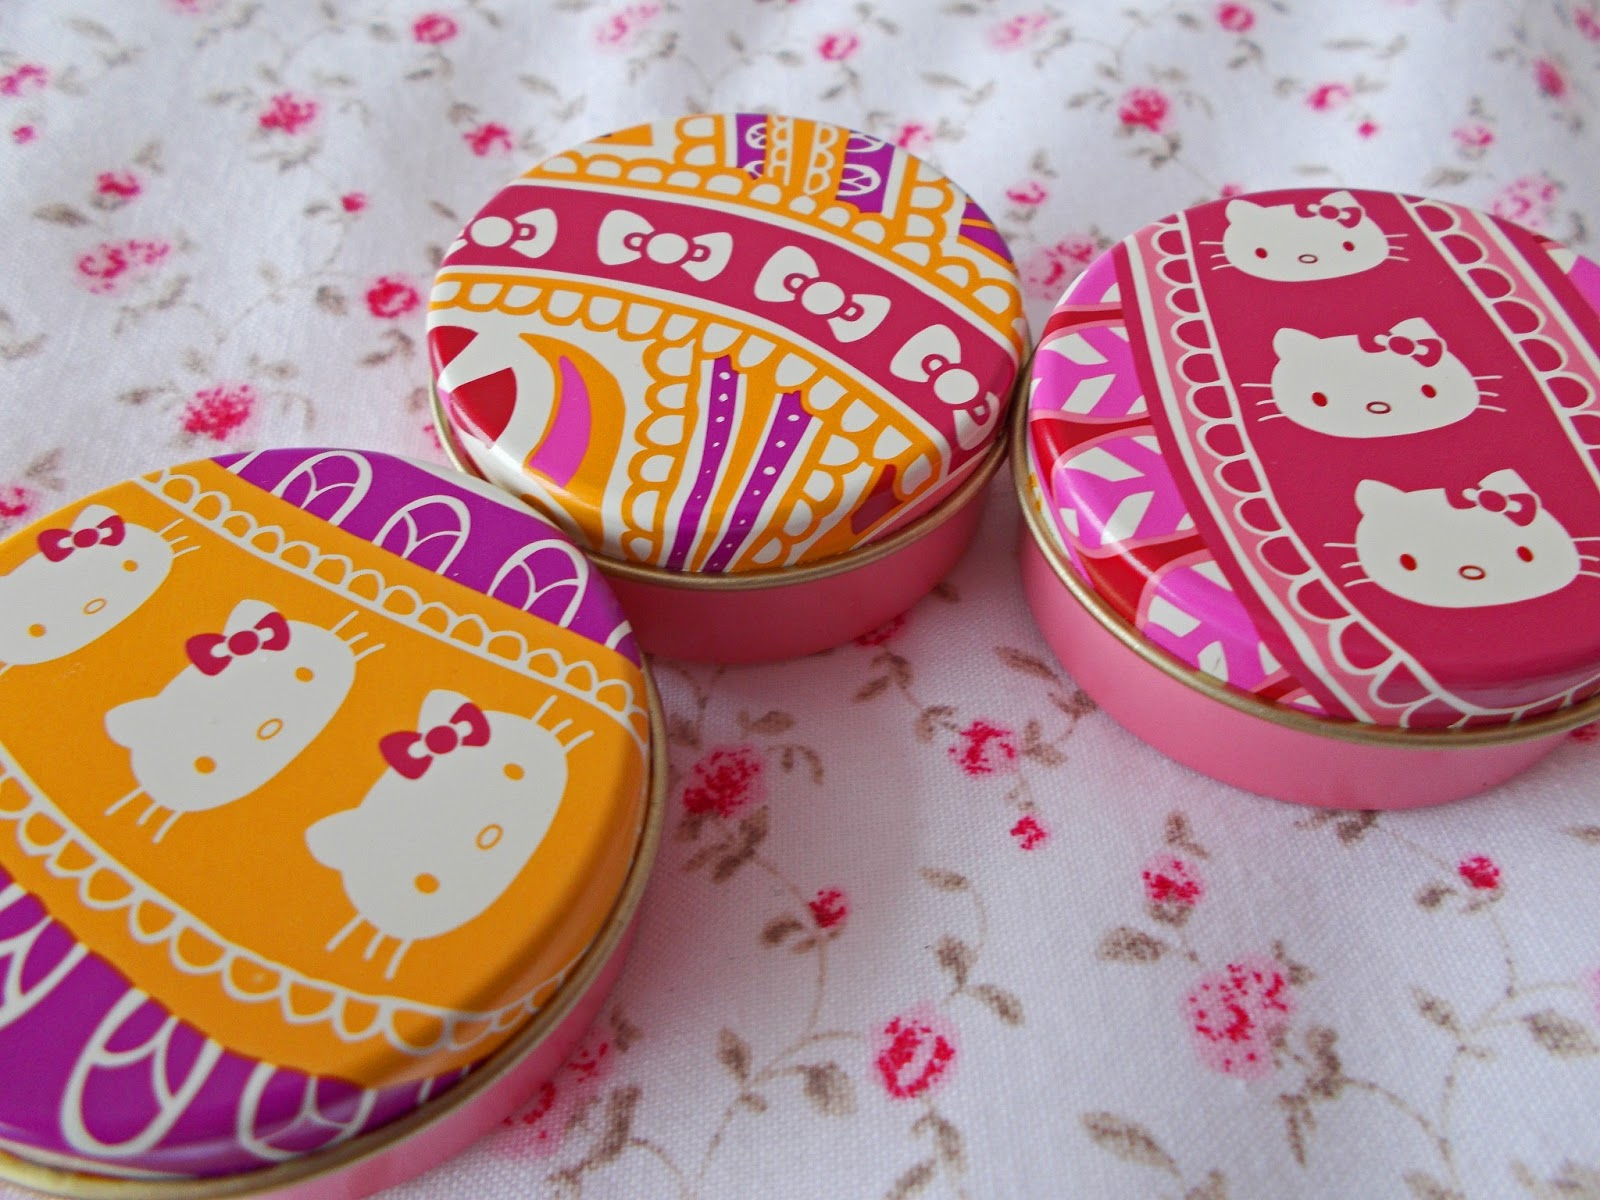 Liberty Art Fabrics For Hello Kitty Lipgloss packaging